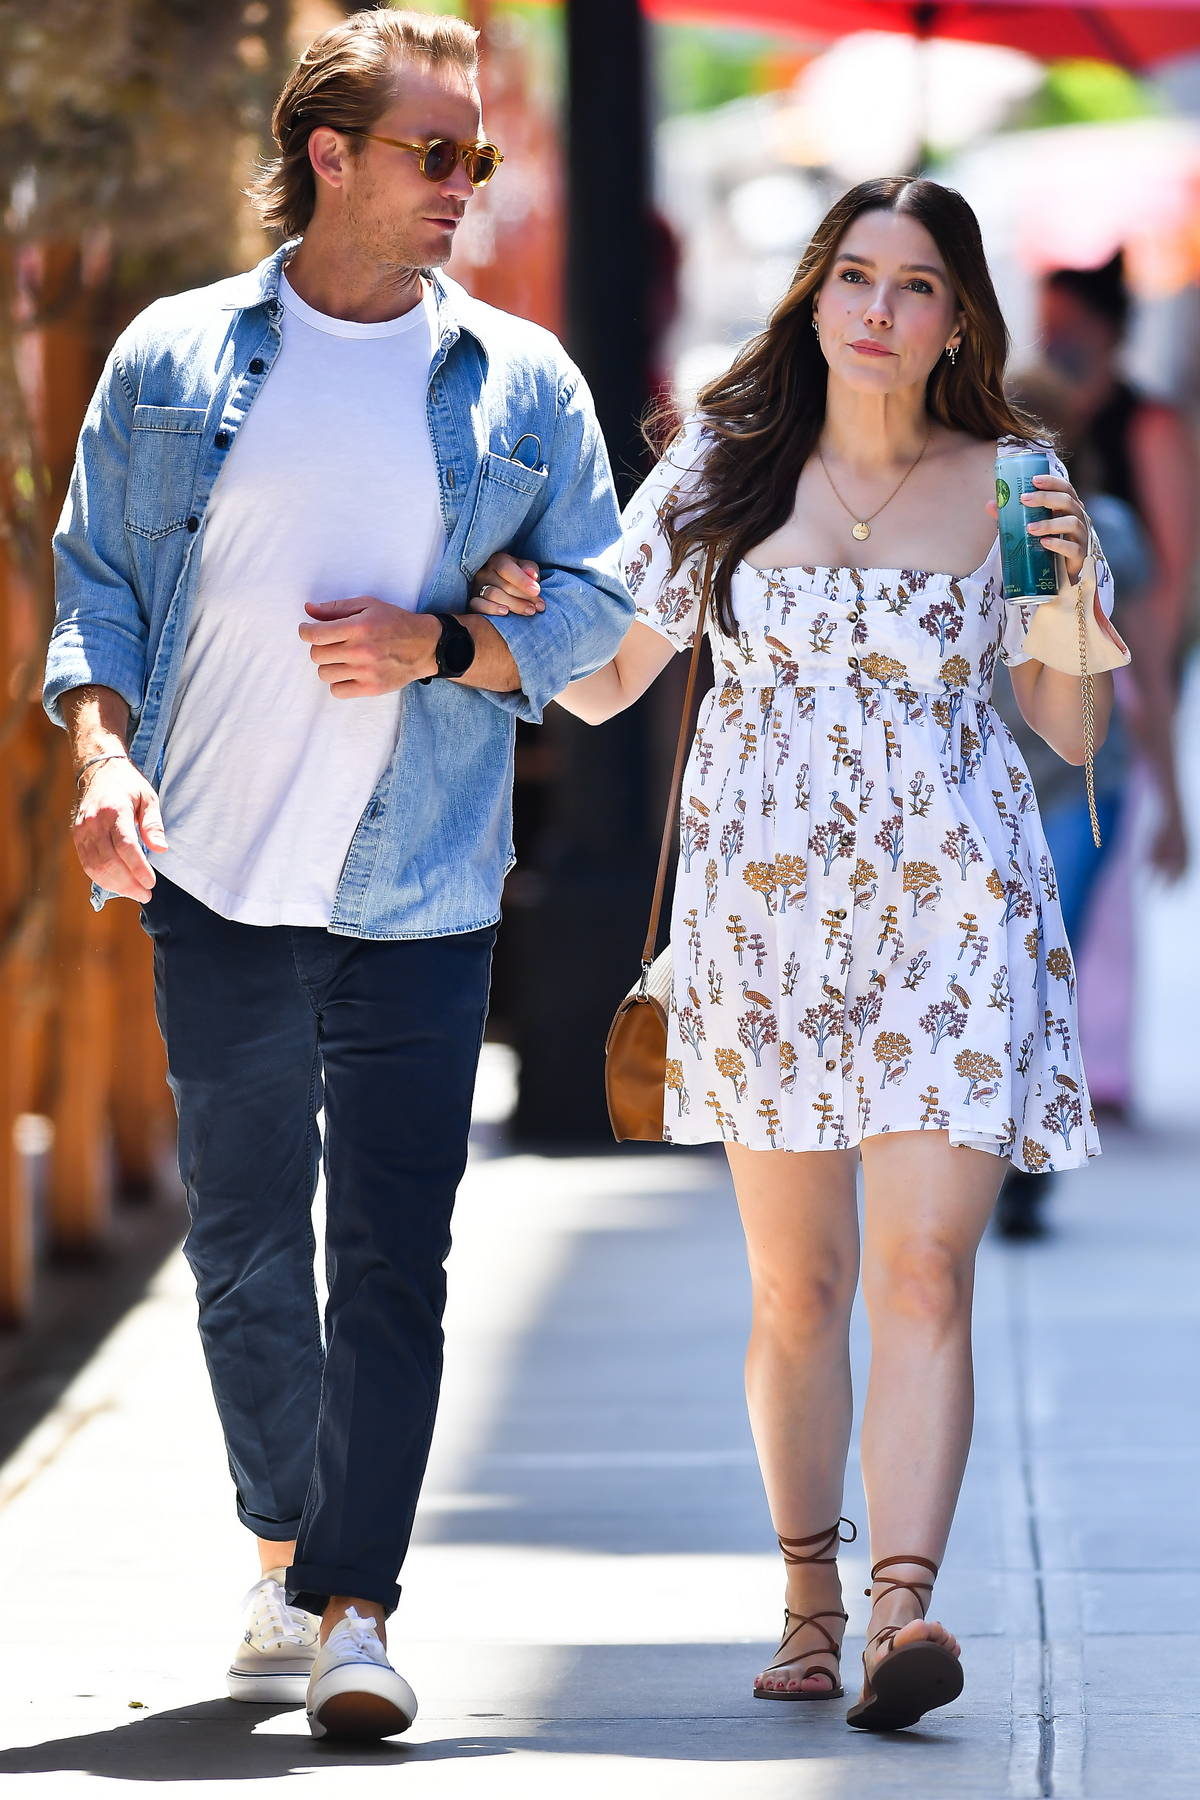 Sophia Bush shows her summer style in a floral print dress while heading out for lunch with Grant Hughes in New York City